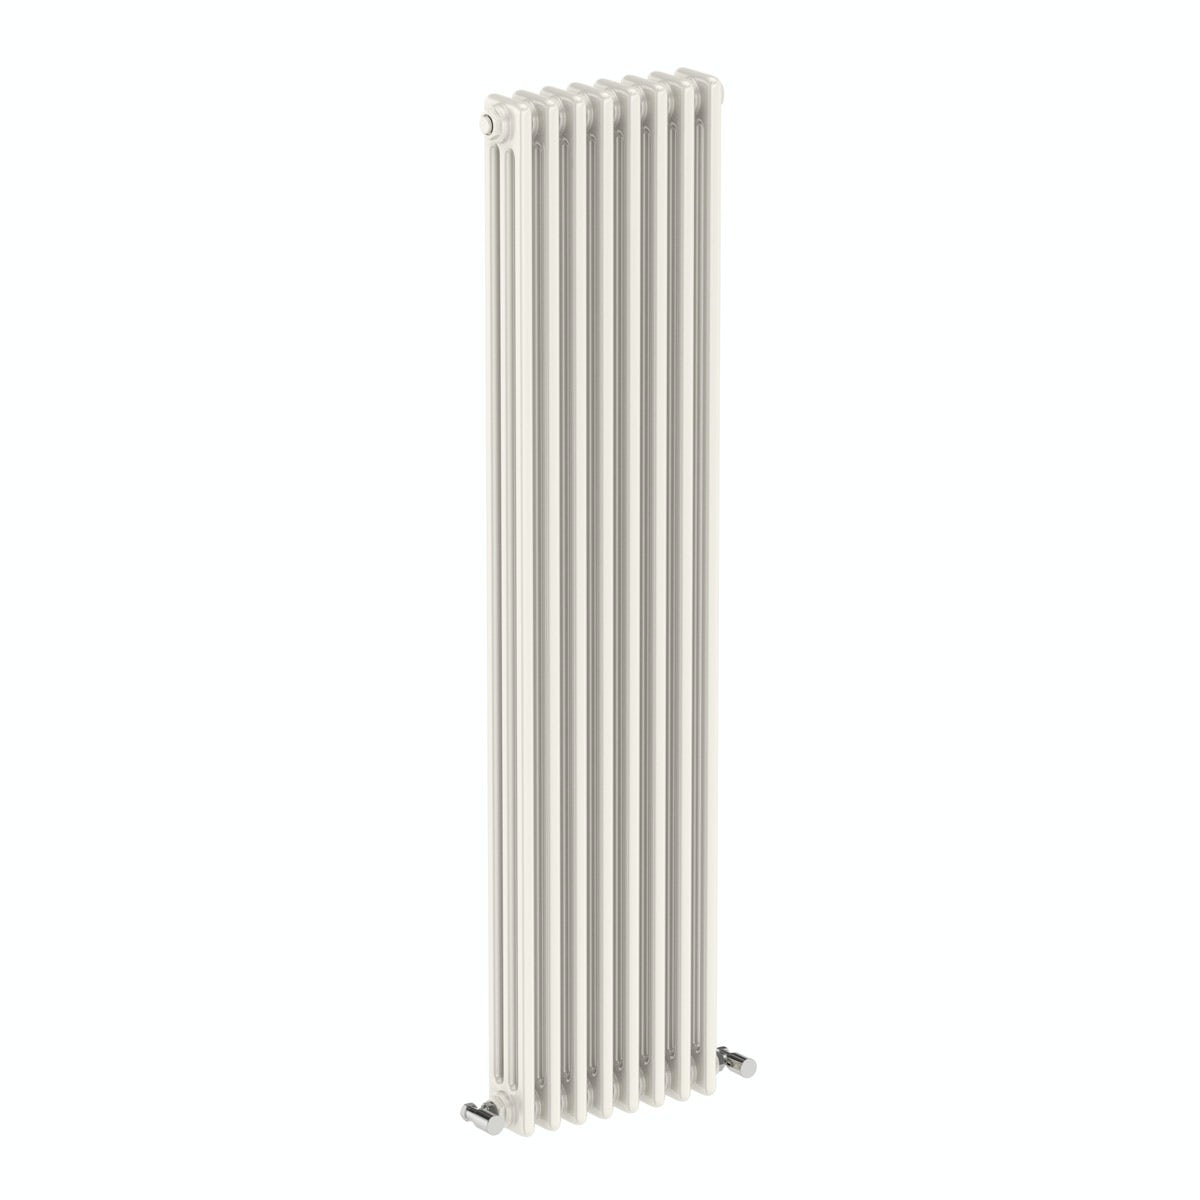 The Bath Co. Dulwich vertical white triple column radiator 1500 x 380